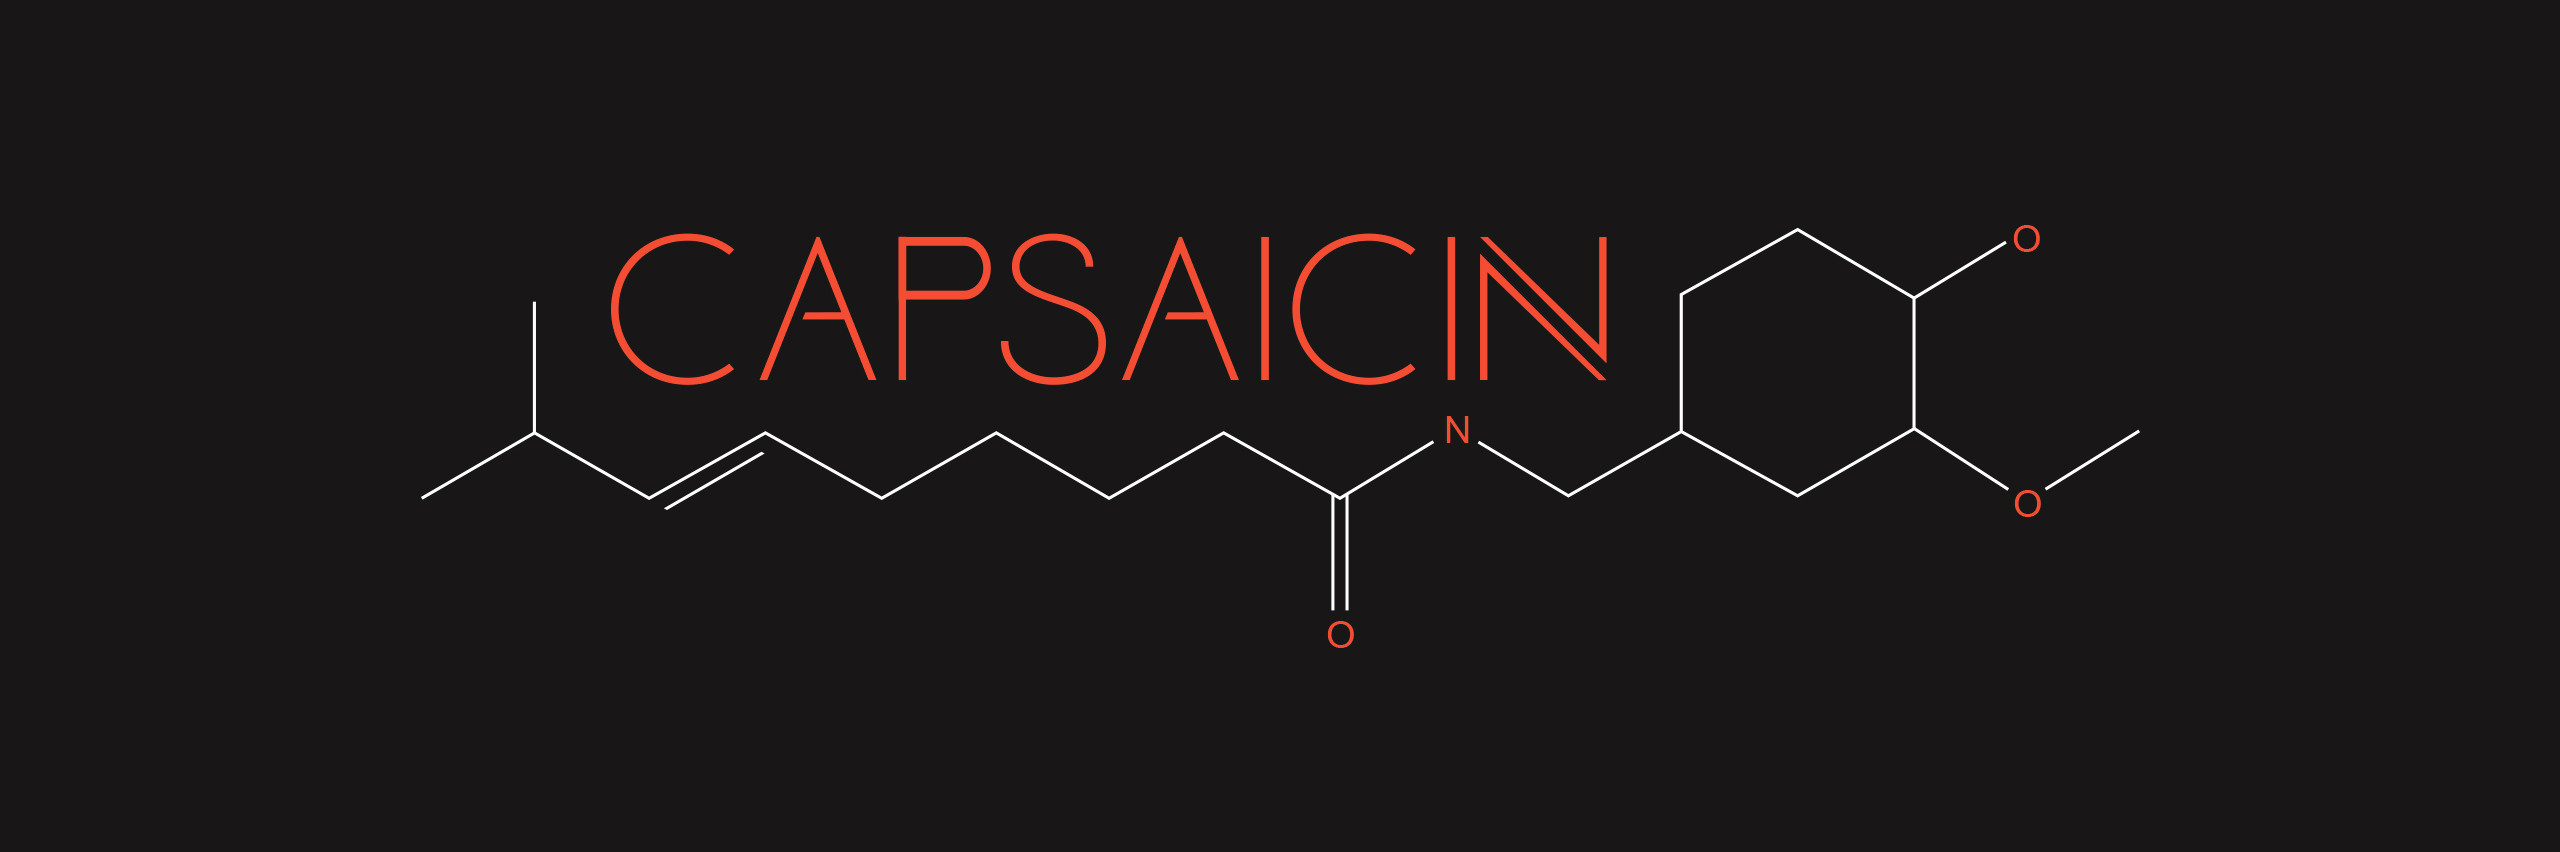 Capsaicin brought to you by AMD Radeon™